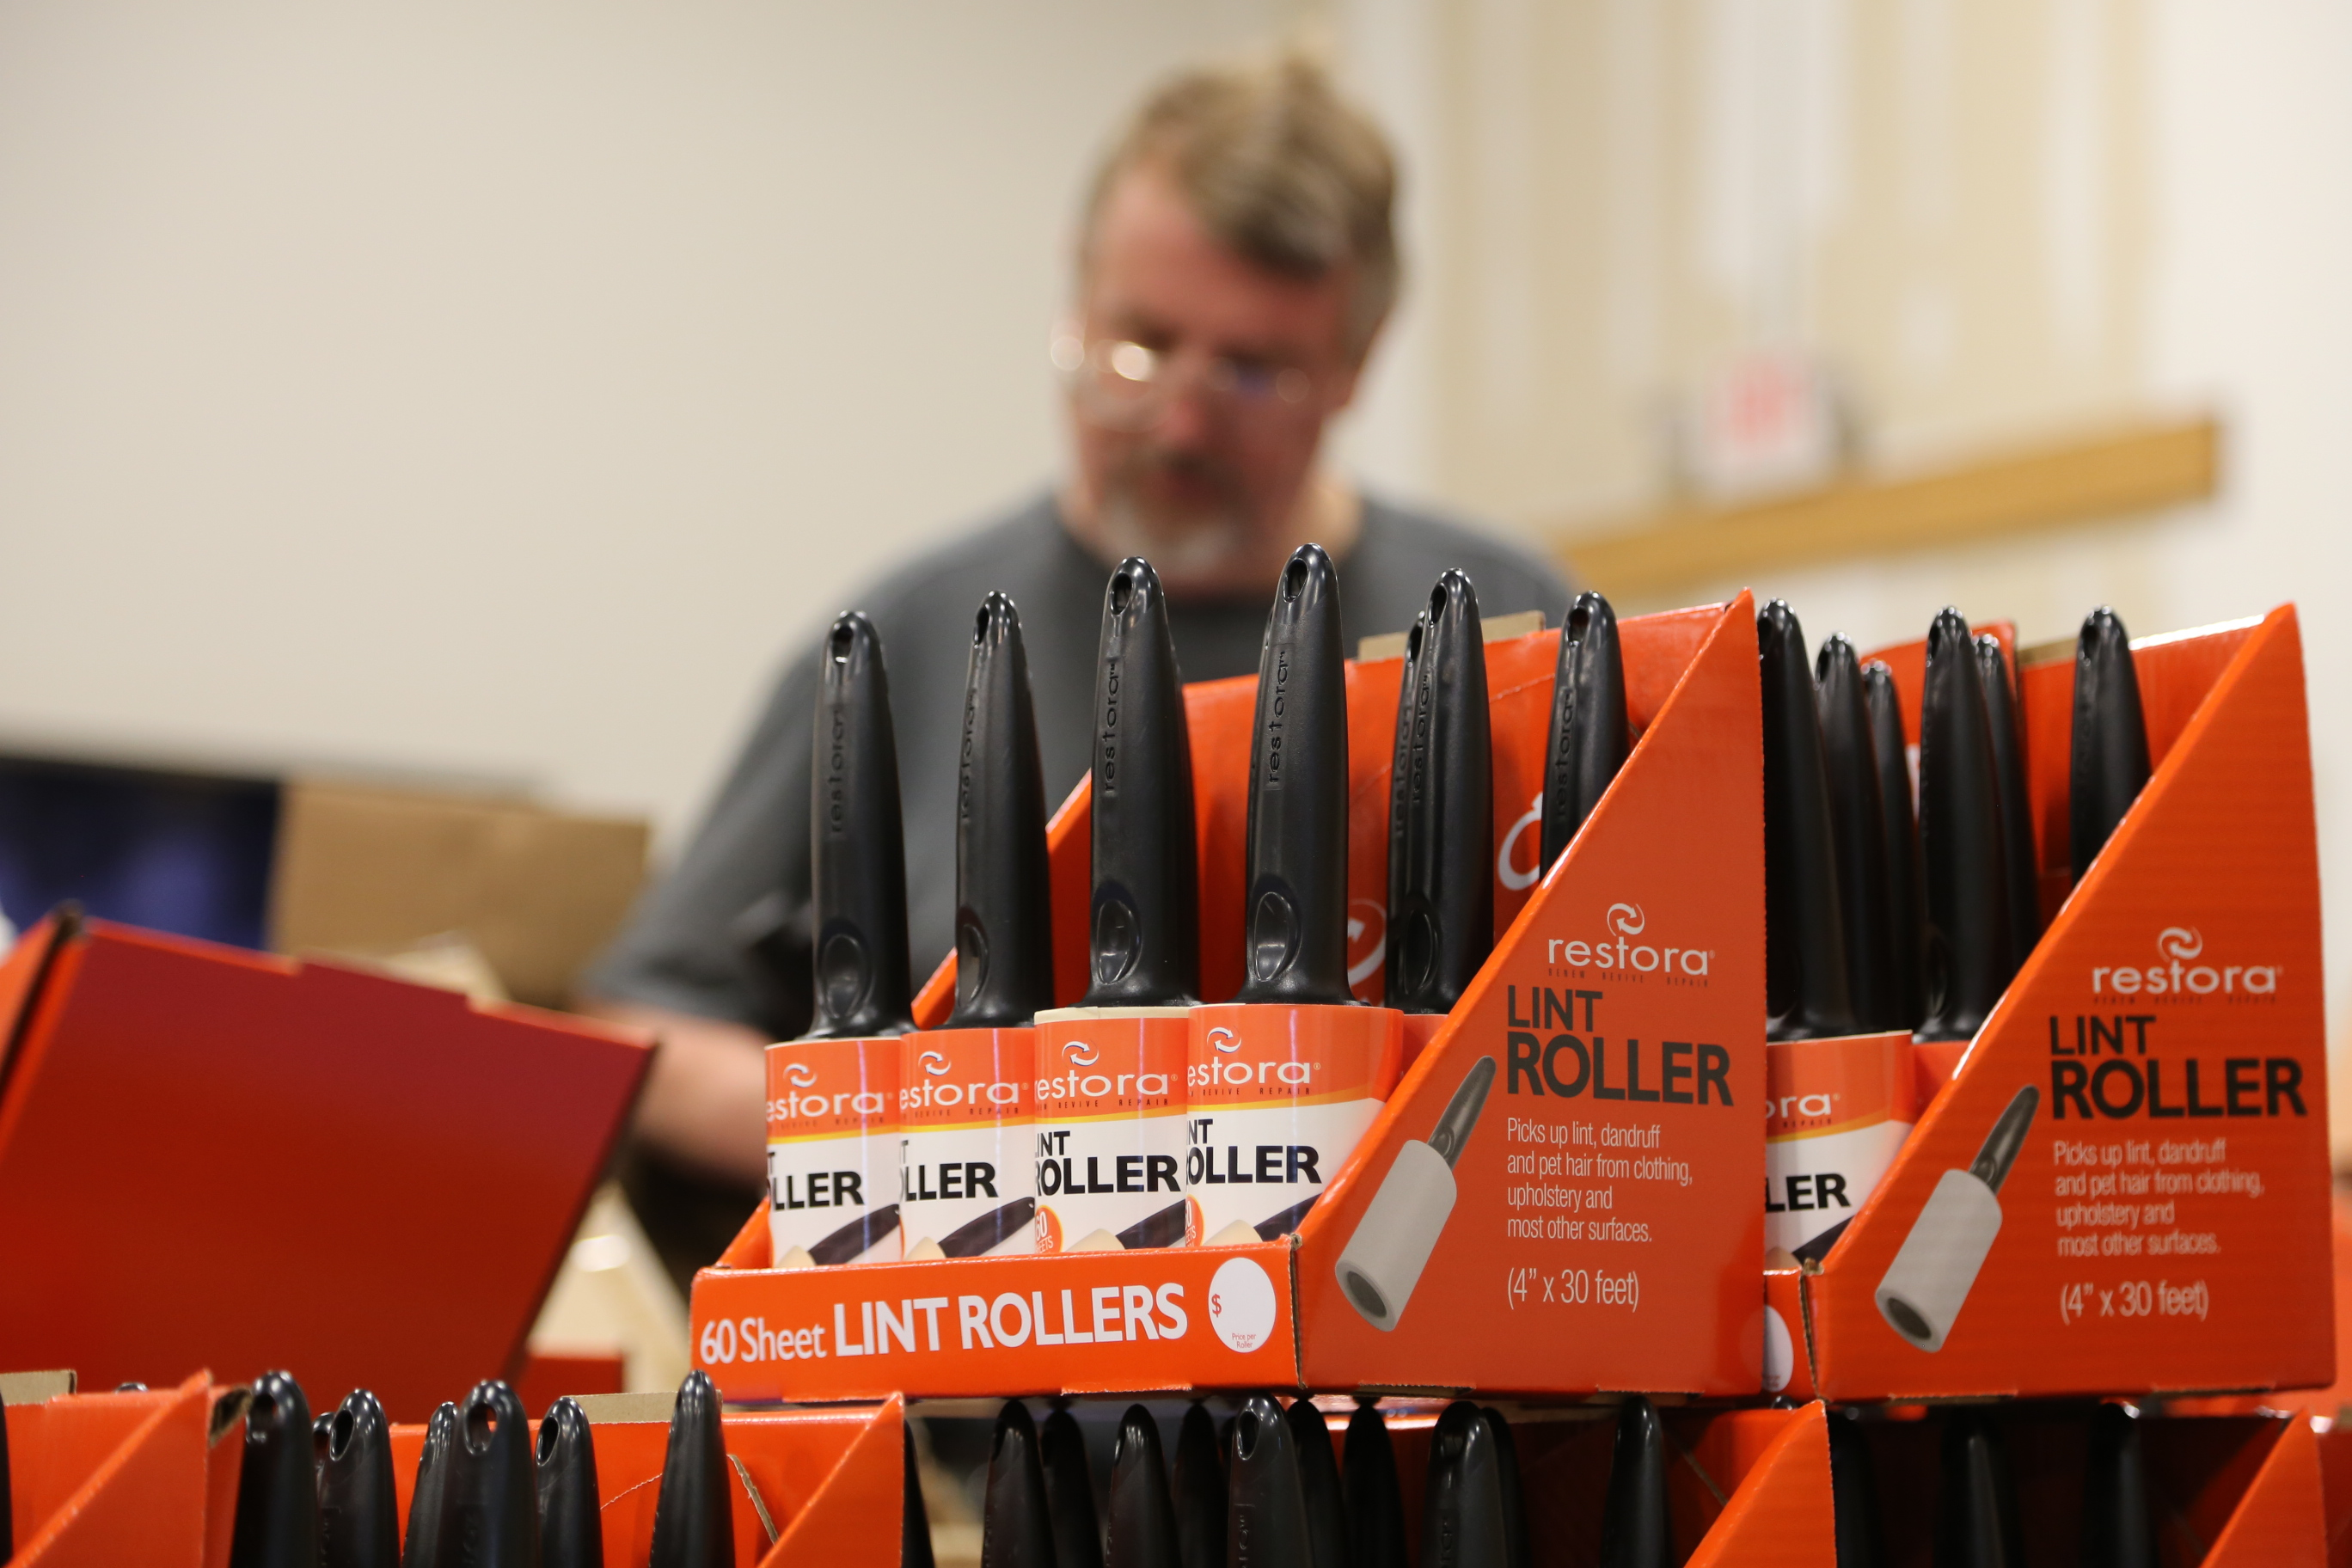 Restora Lint Rollers being repackaged at Alternatives Industry